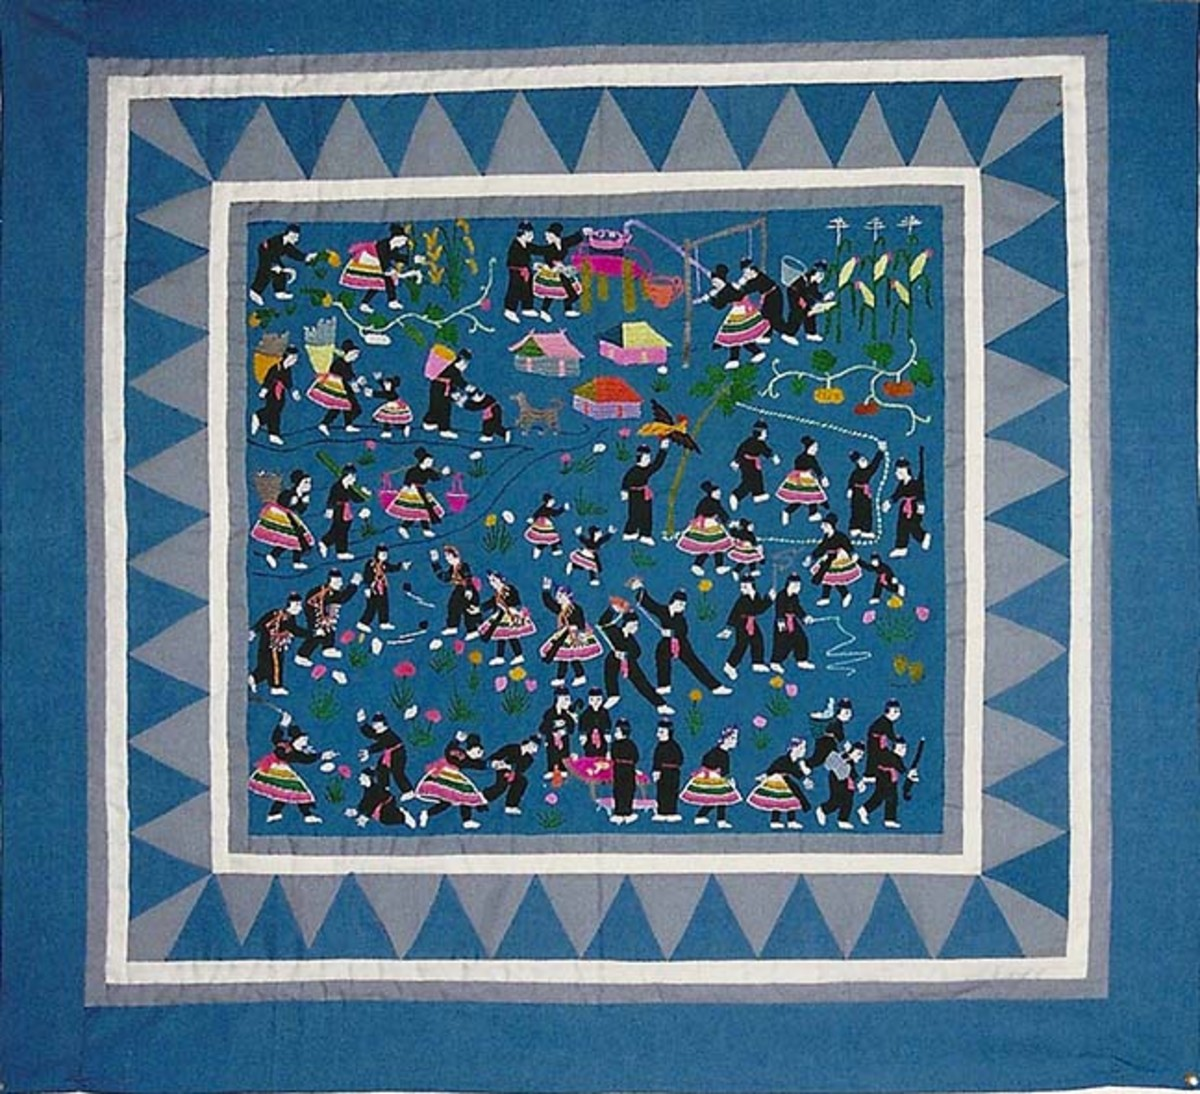 Photo of another smaller story quilt taken at the home of a friend named Ka.